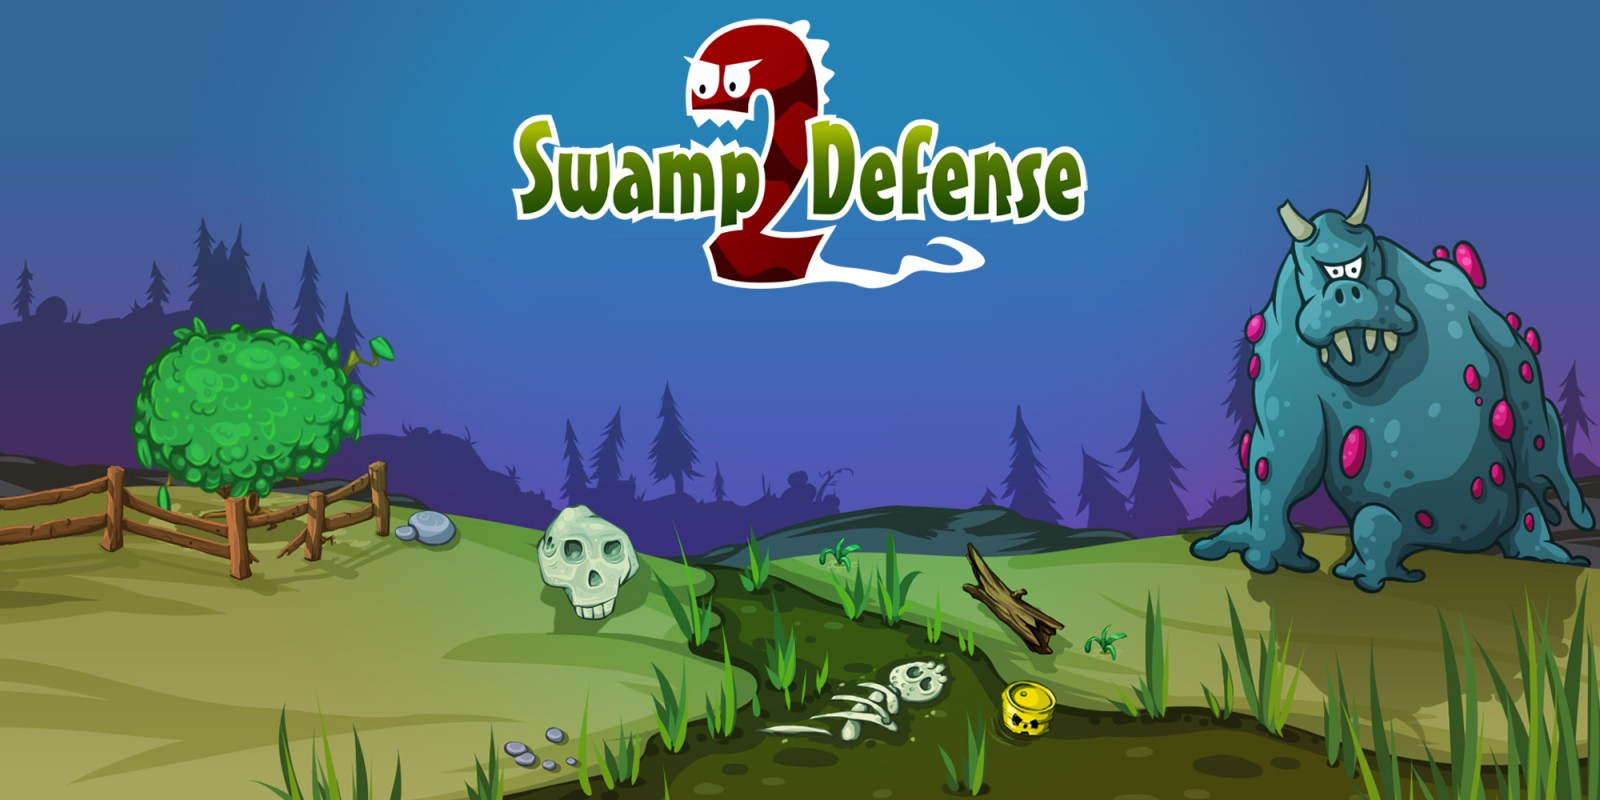 Swamp Defense 2